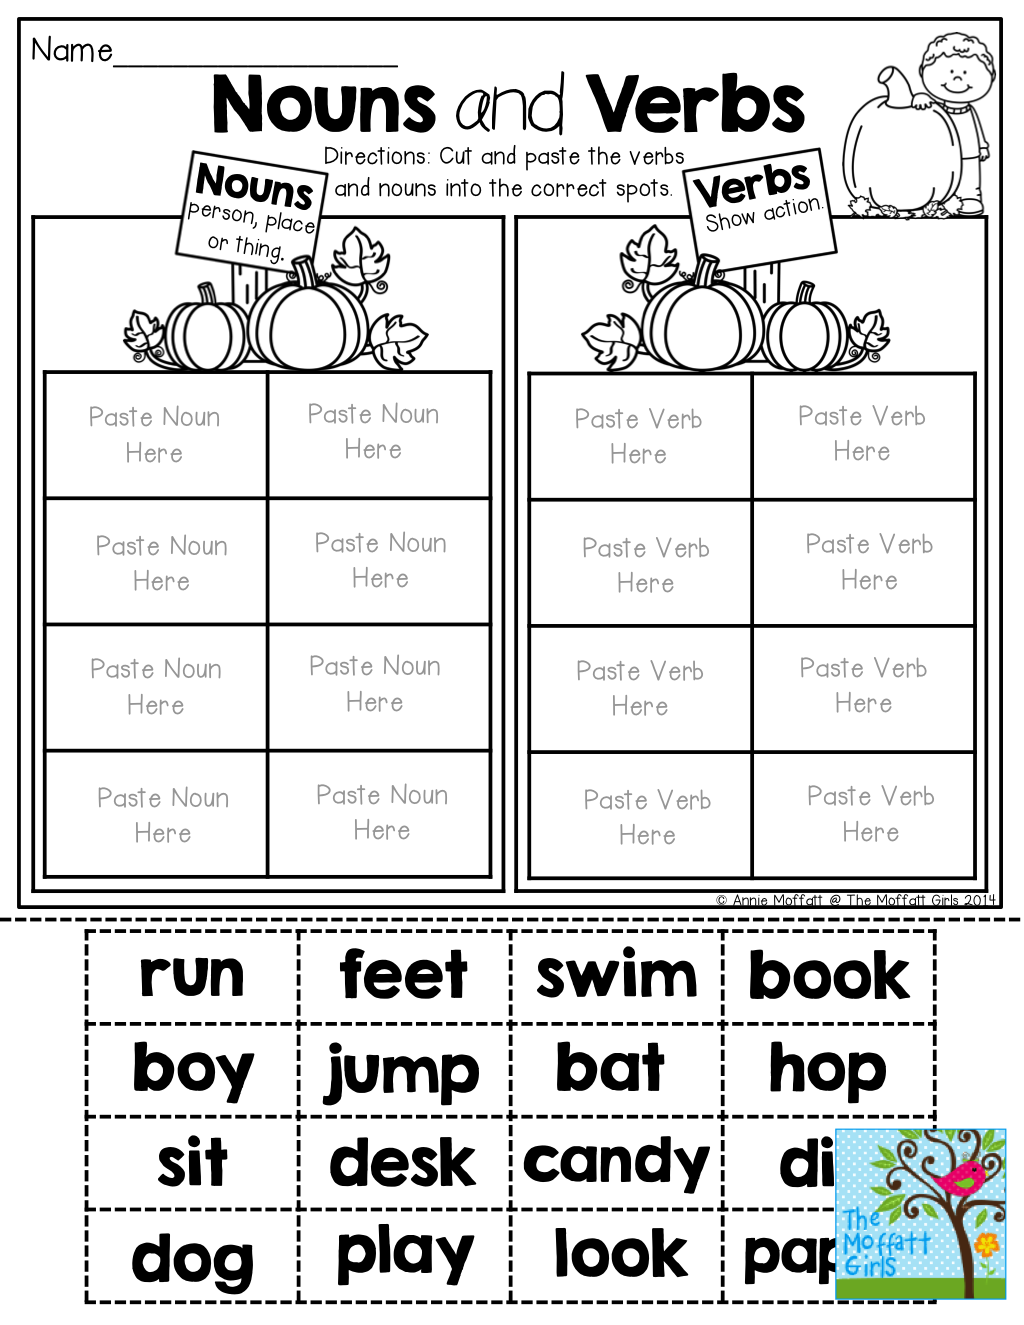 Nouns and Verbs (sorting) TONS of fun printables! | Nouns ...